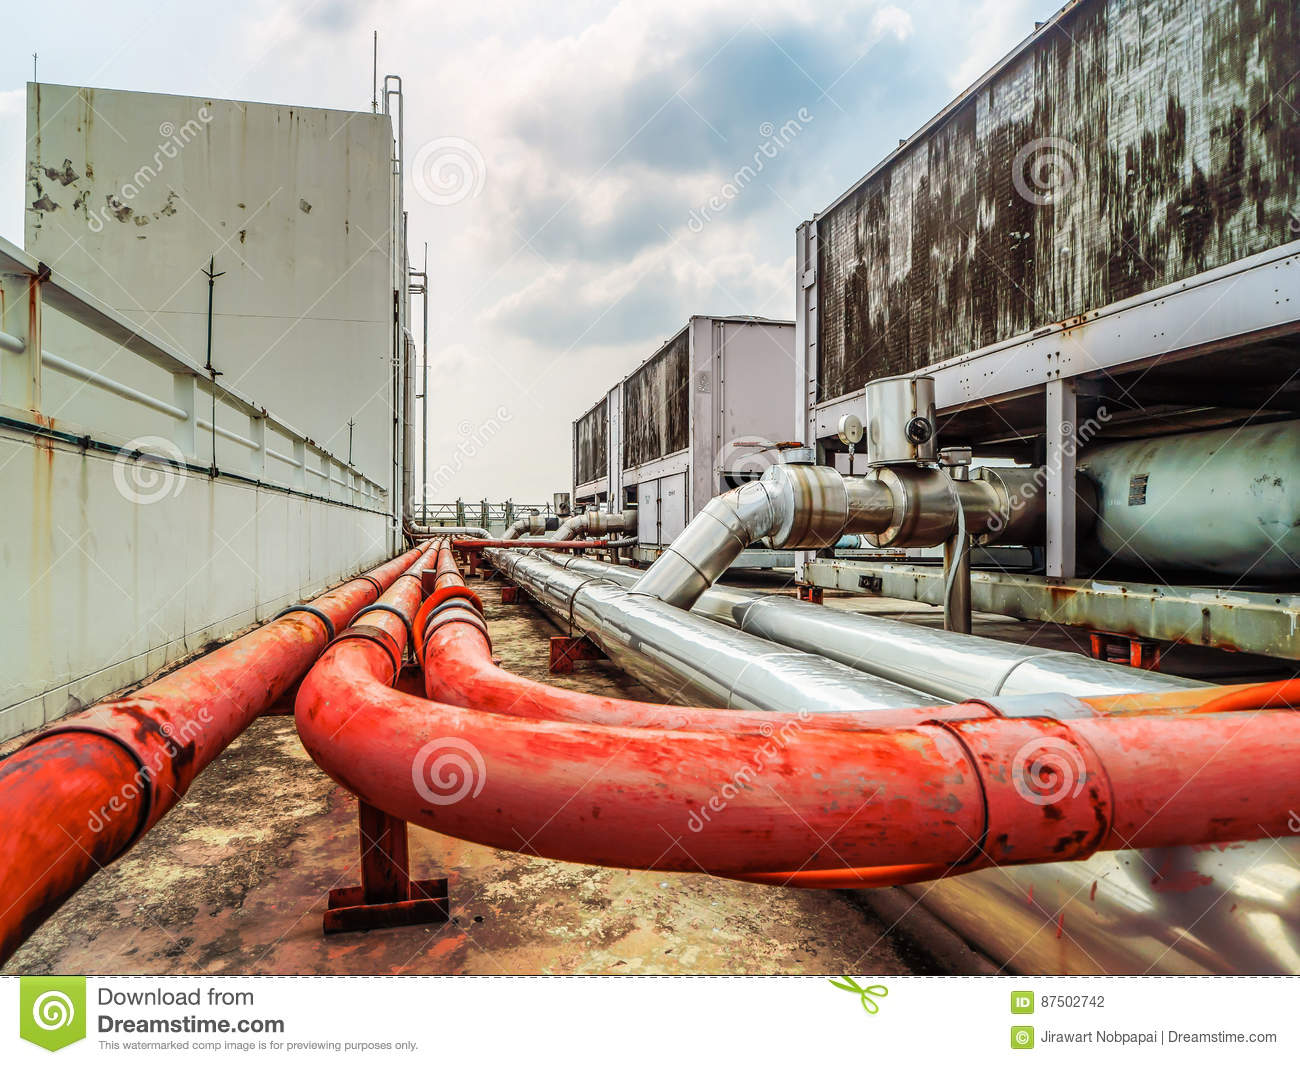 Air, Fire And Water Tube System Stock Photo - Image of